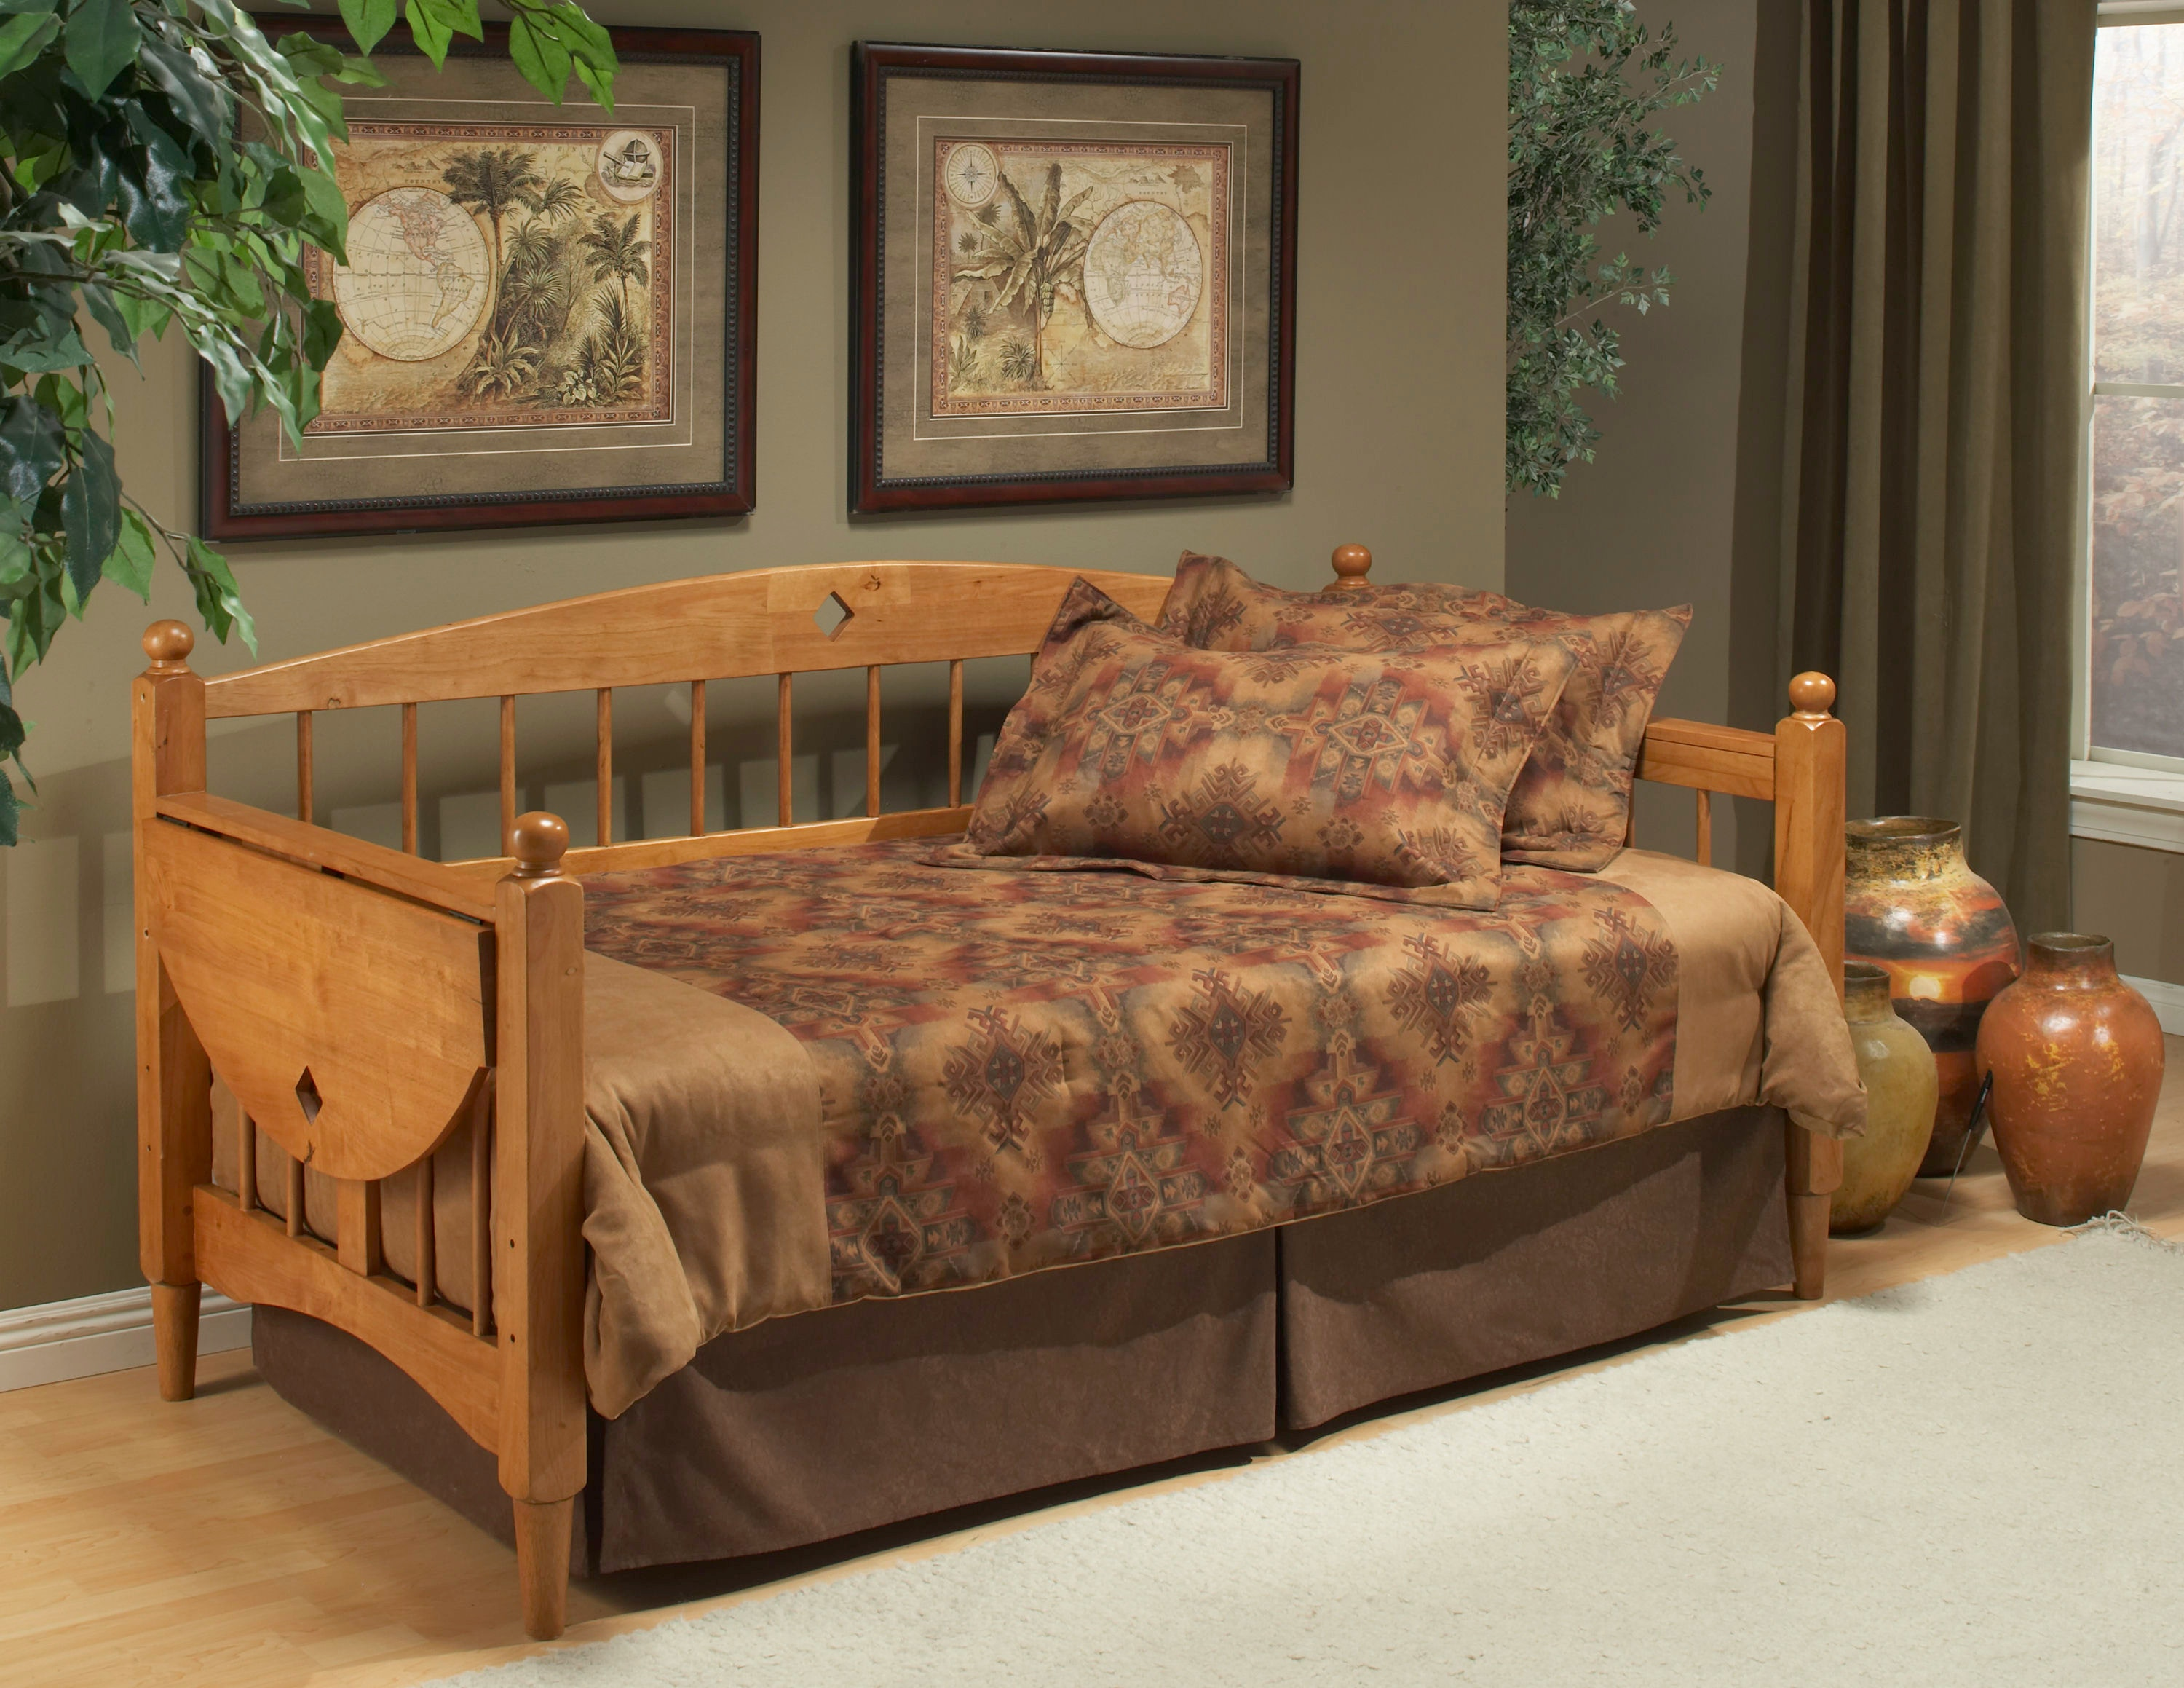 Beau Hillsdale Furniture Bedroom Dalton Daybed   Back 1393 020C At Daws Home  Furnishings